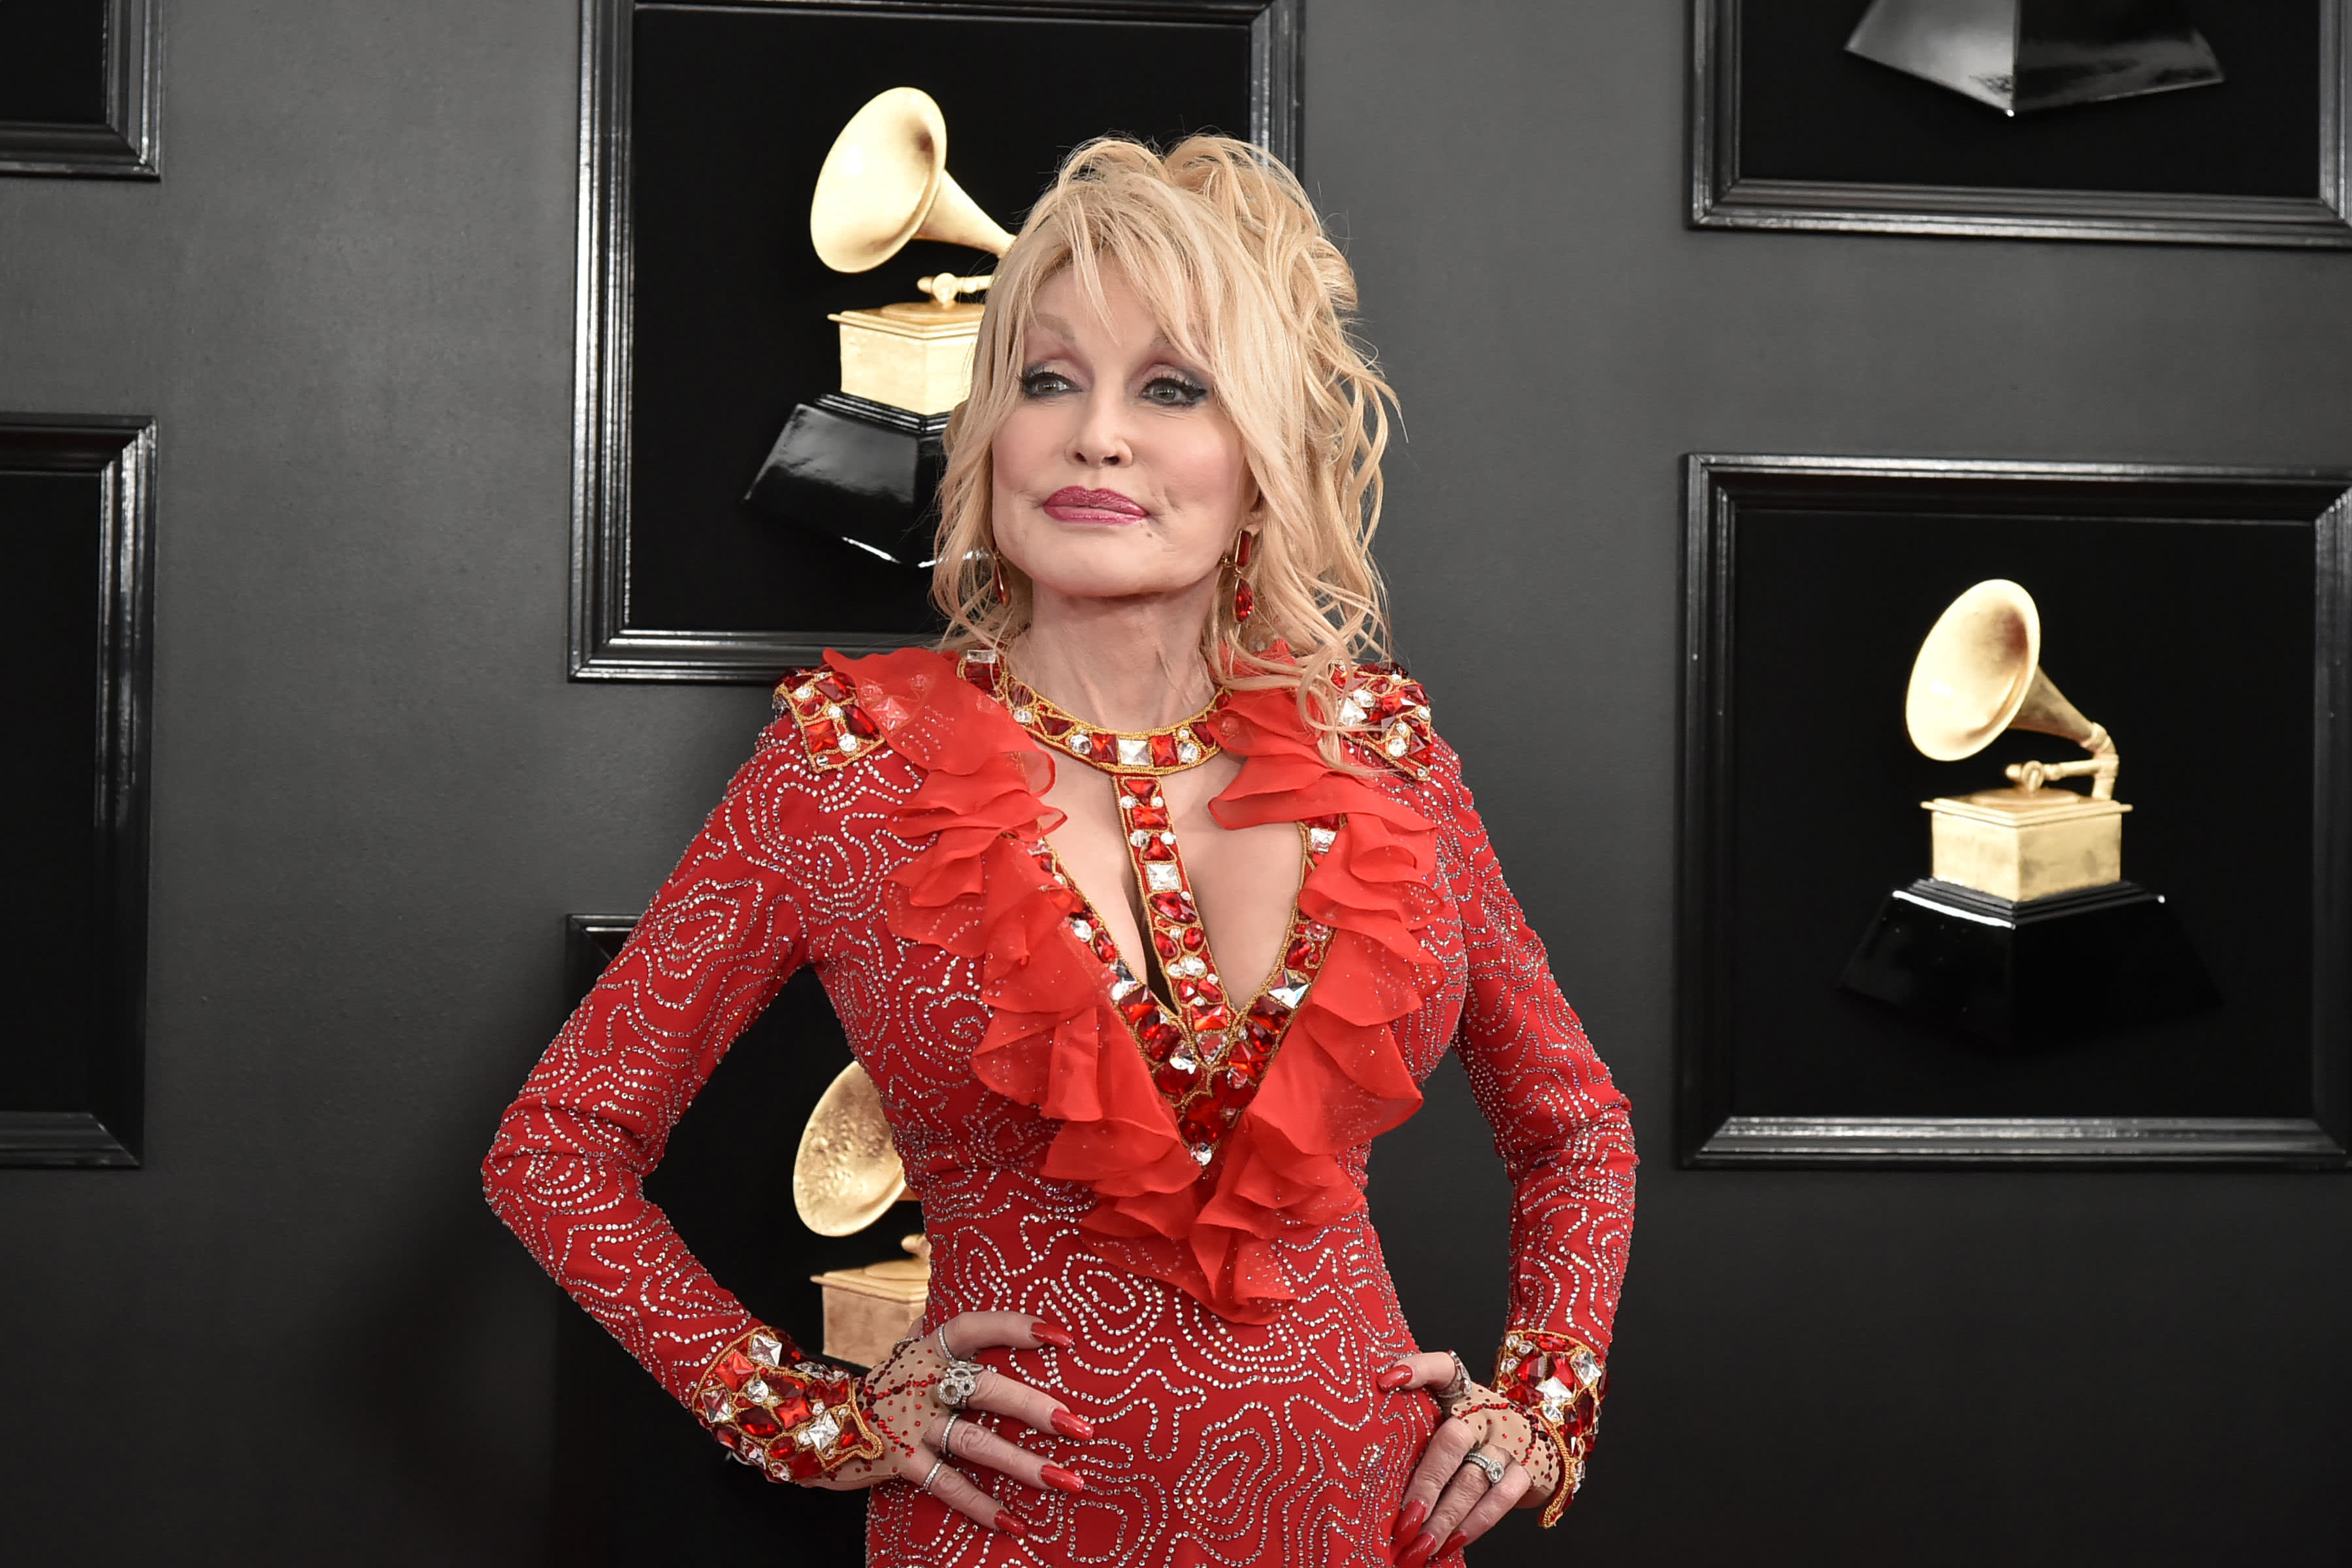 Dolly Parton's advice to young people: 'You've got your own journey'